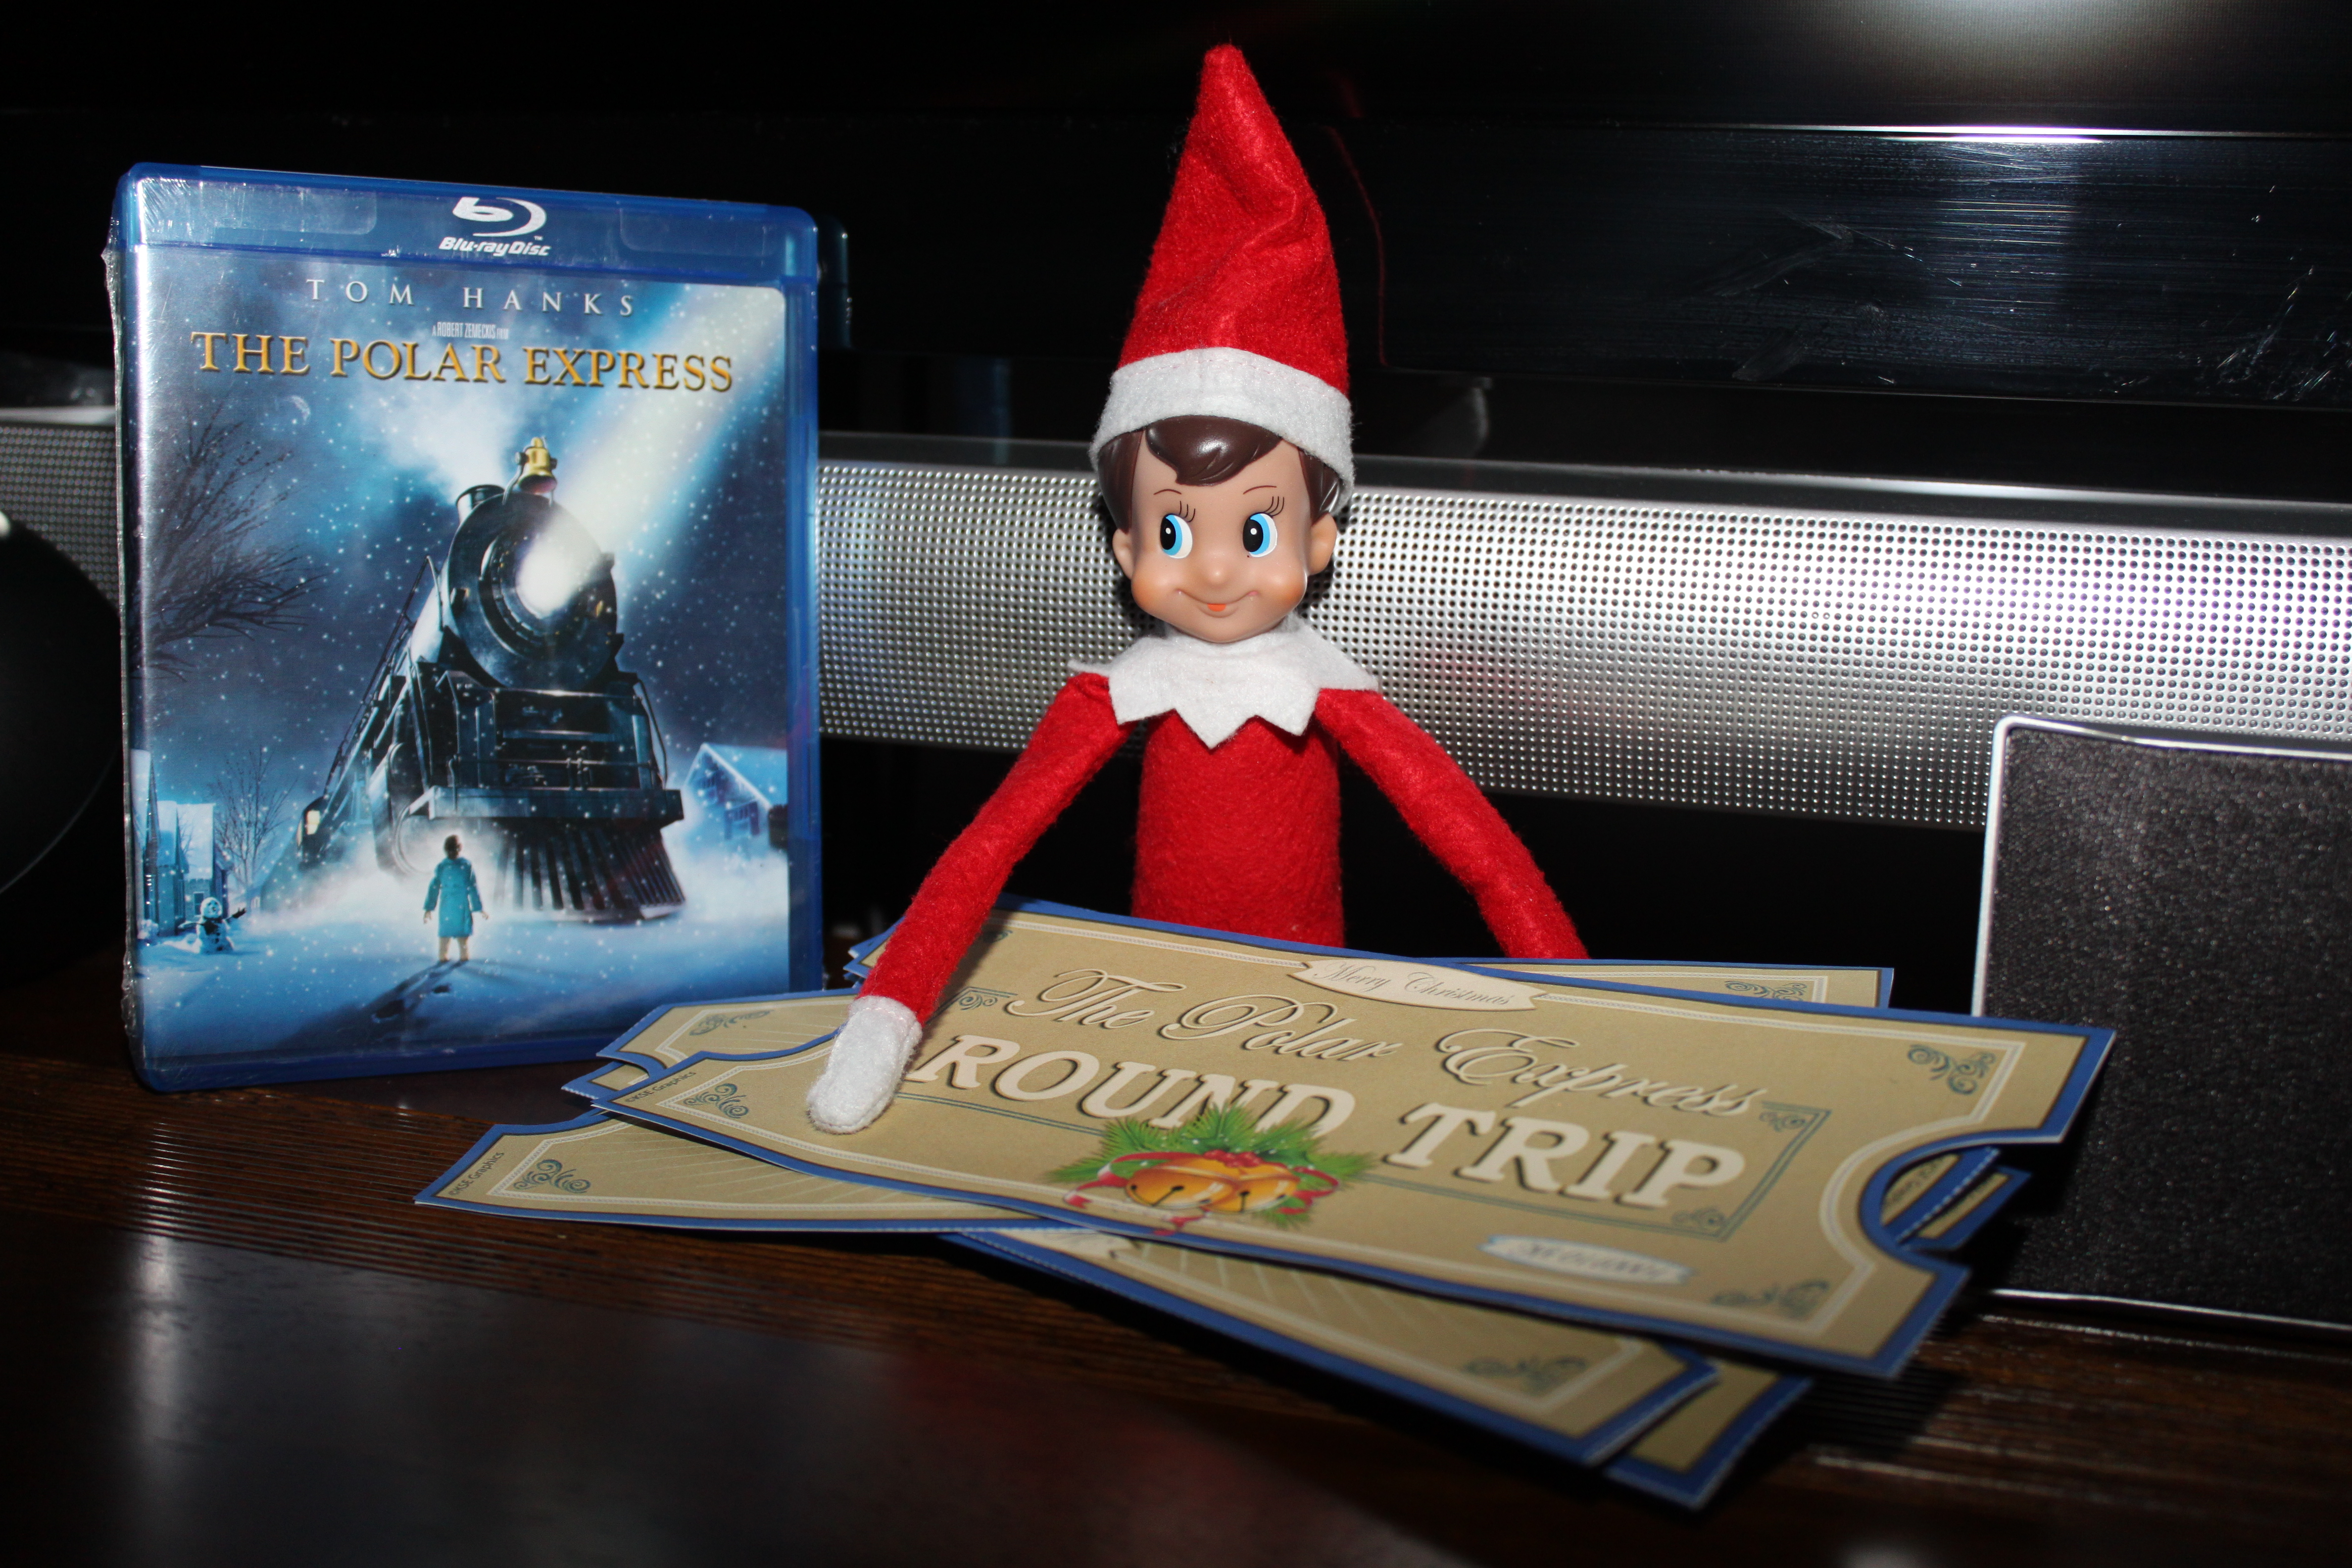 Tickets From The Polar Express | Search Results | Calendar 2015